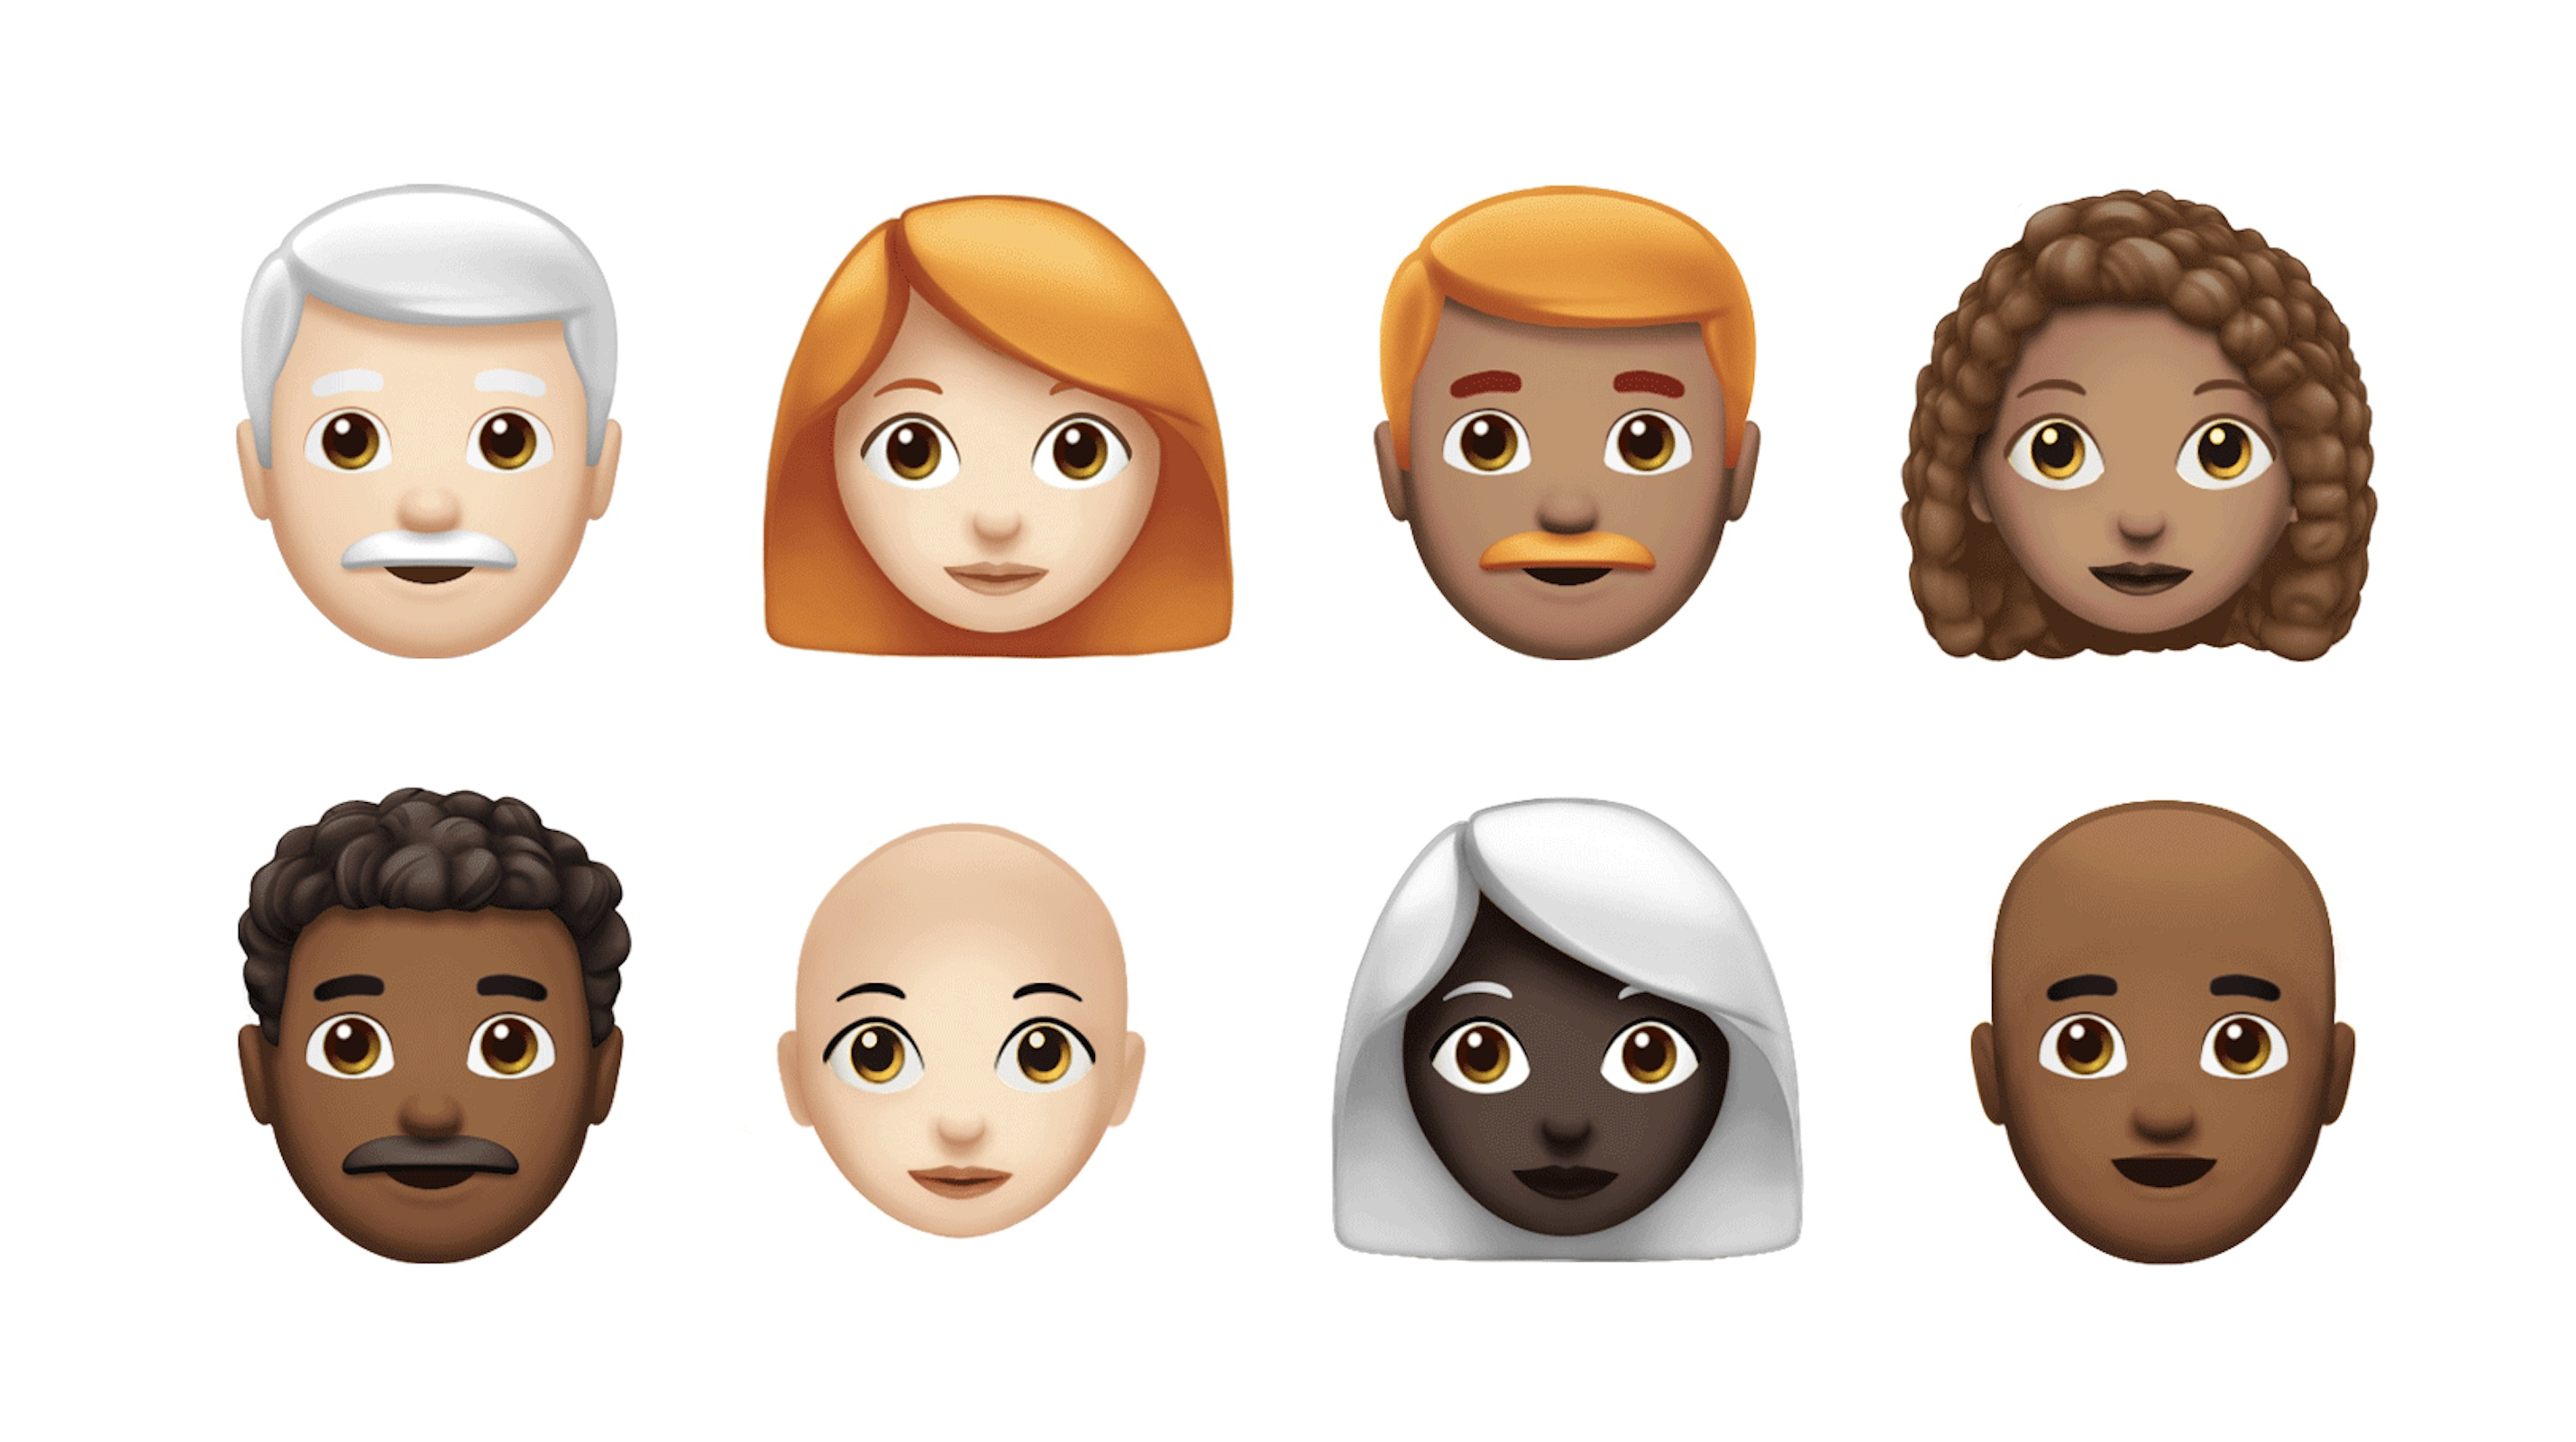 Apple teases out over 70 new Emoji coming to iOS and Mac this fall including red hair, super heroes, and lobsters